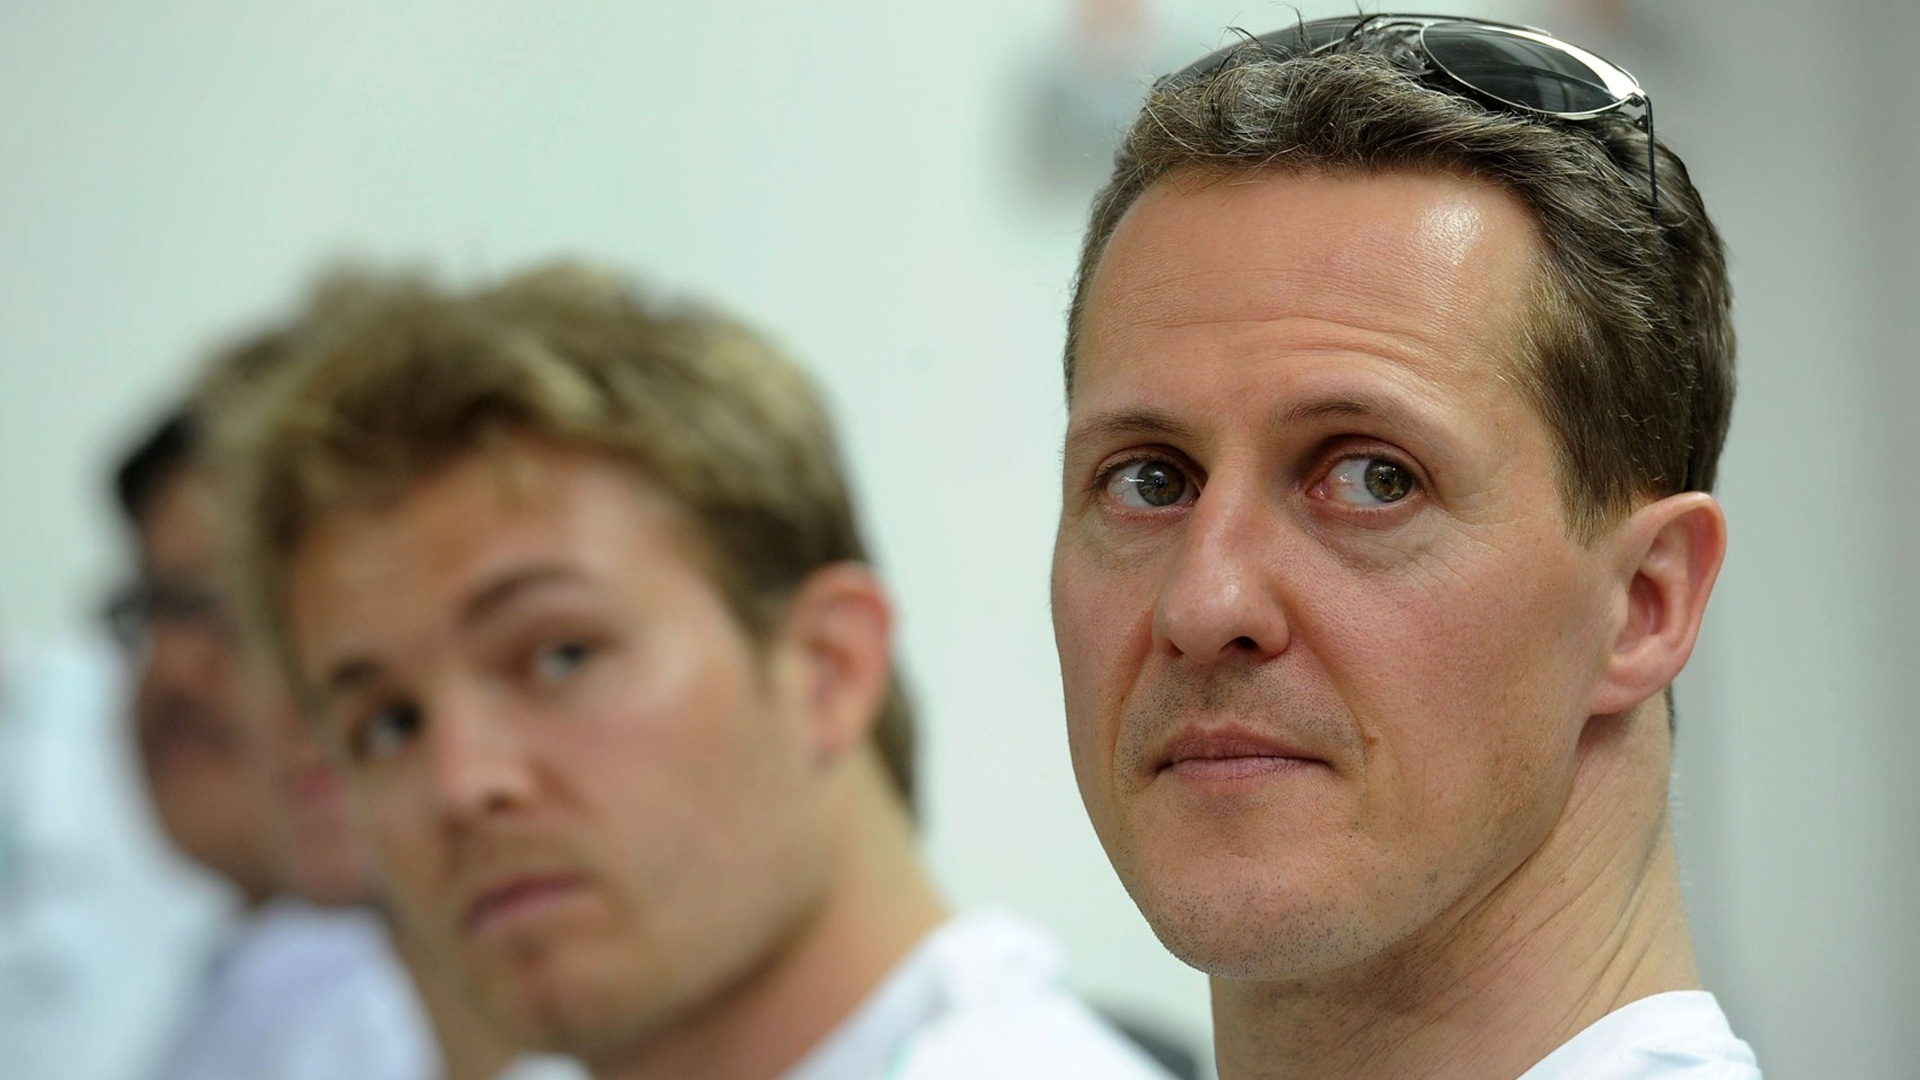 Michael Schumacher e Nico Rosberg visitaram a fbrica da Mercedes na Malsia, onde ser disputada a segunda etapa do Mundial de F-1